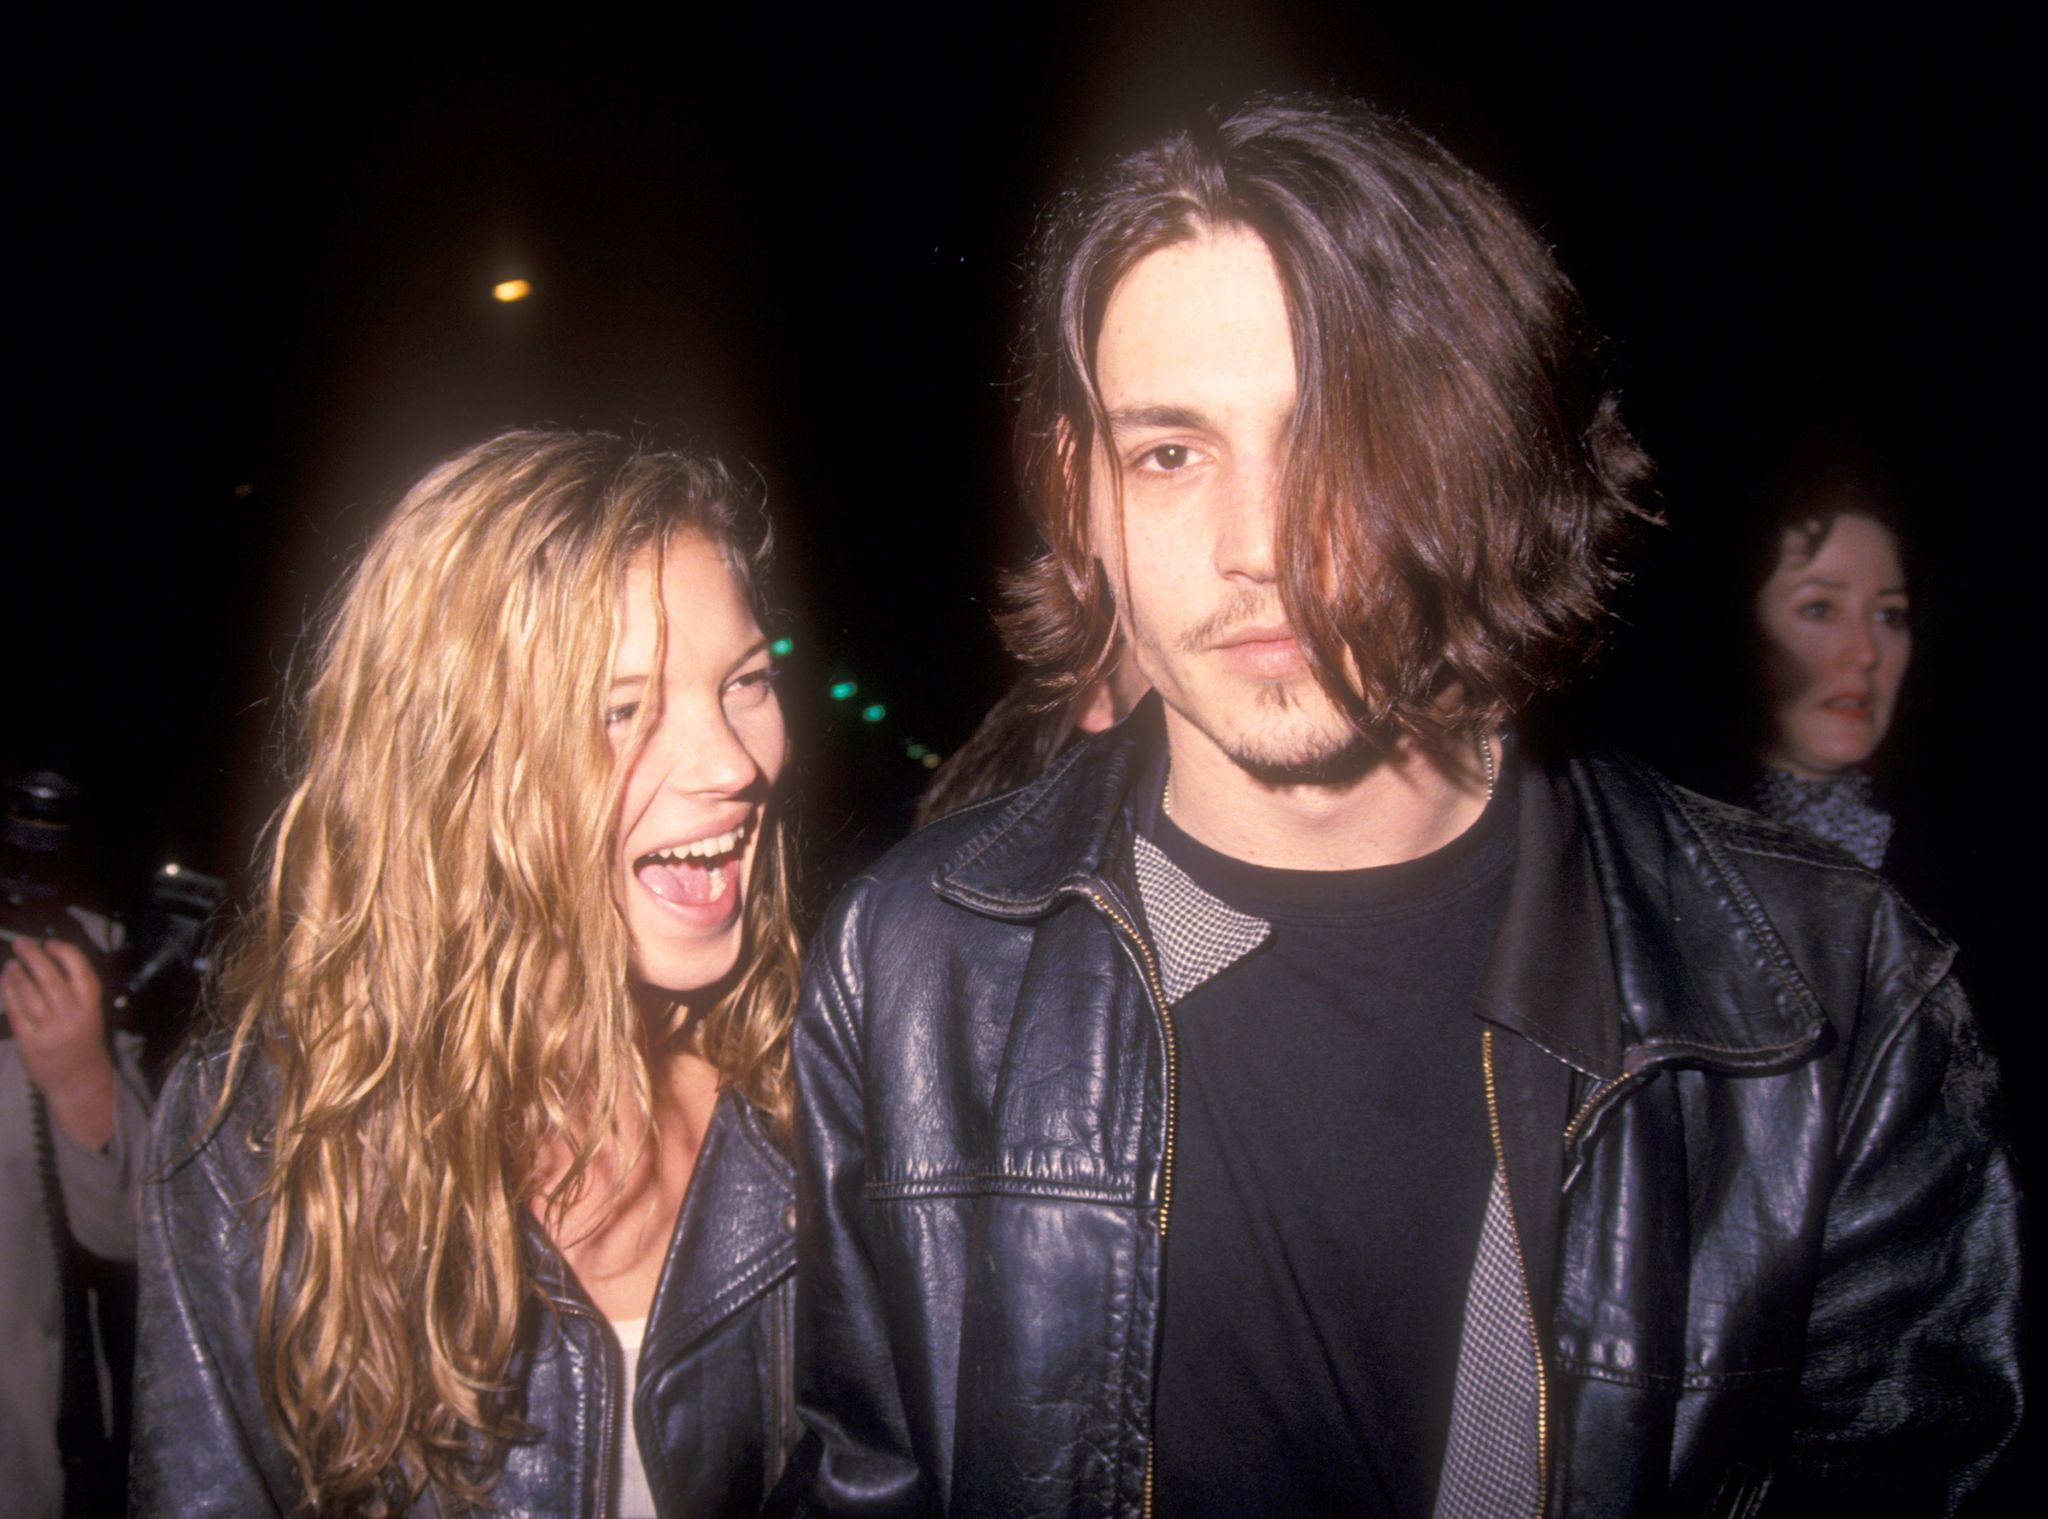 Johnny Depp and Kate Moss / Getty Images